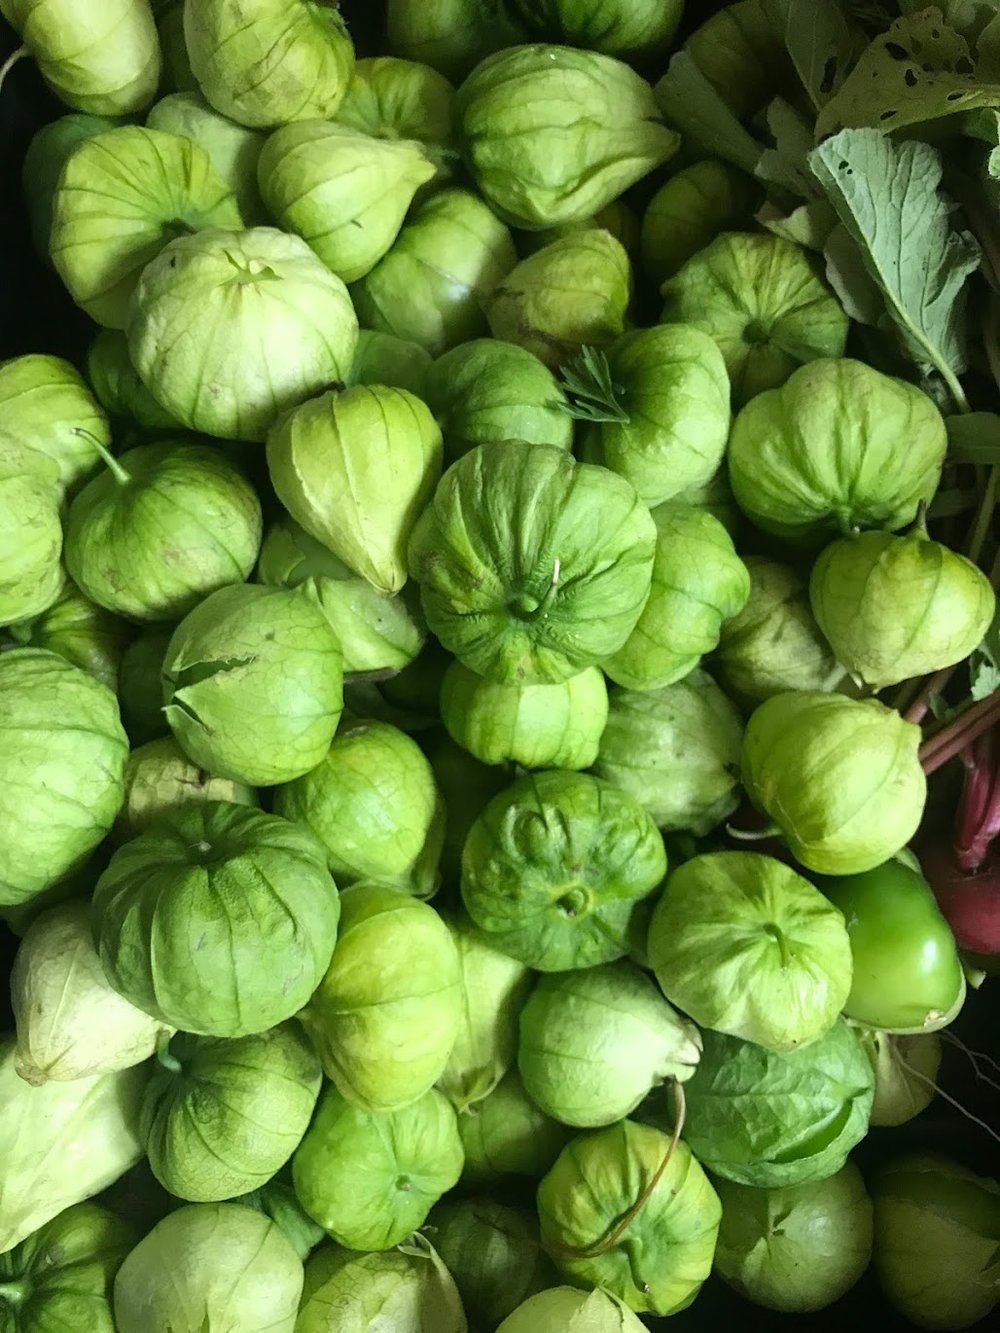 Tomatillos -  A tangy, tart relative of the tomato that is prized in Mexican and South western food. Unique addition to salads and pastas. Essential in salsa verde or gazpacho verde.